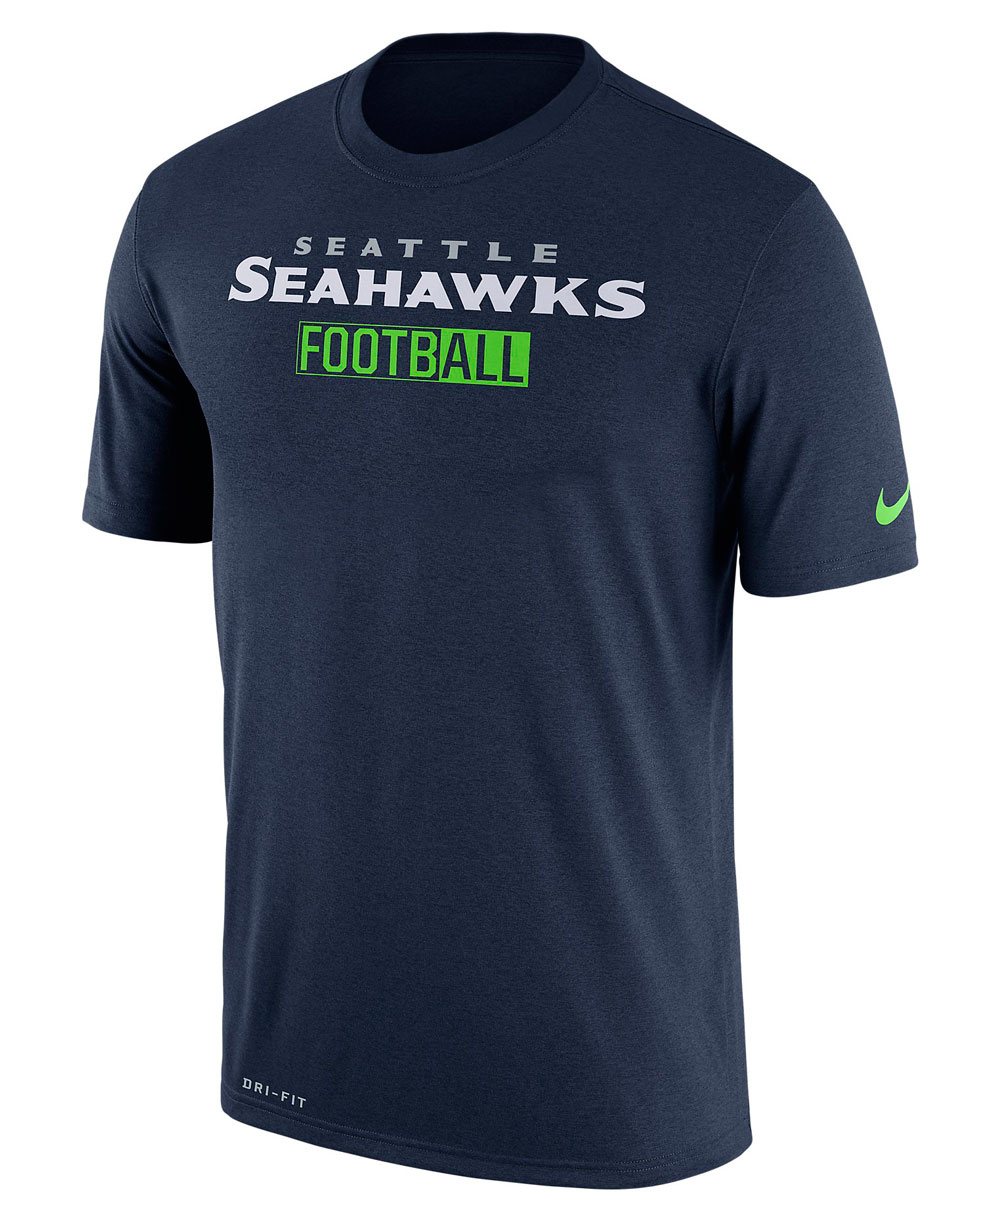 Men's T-Shirt Legend All Football NFL Seahawks